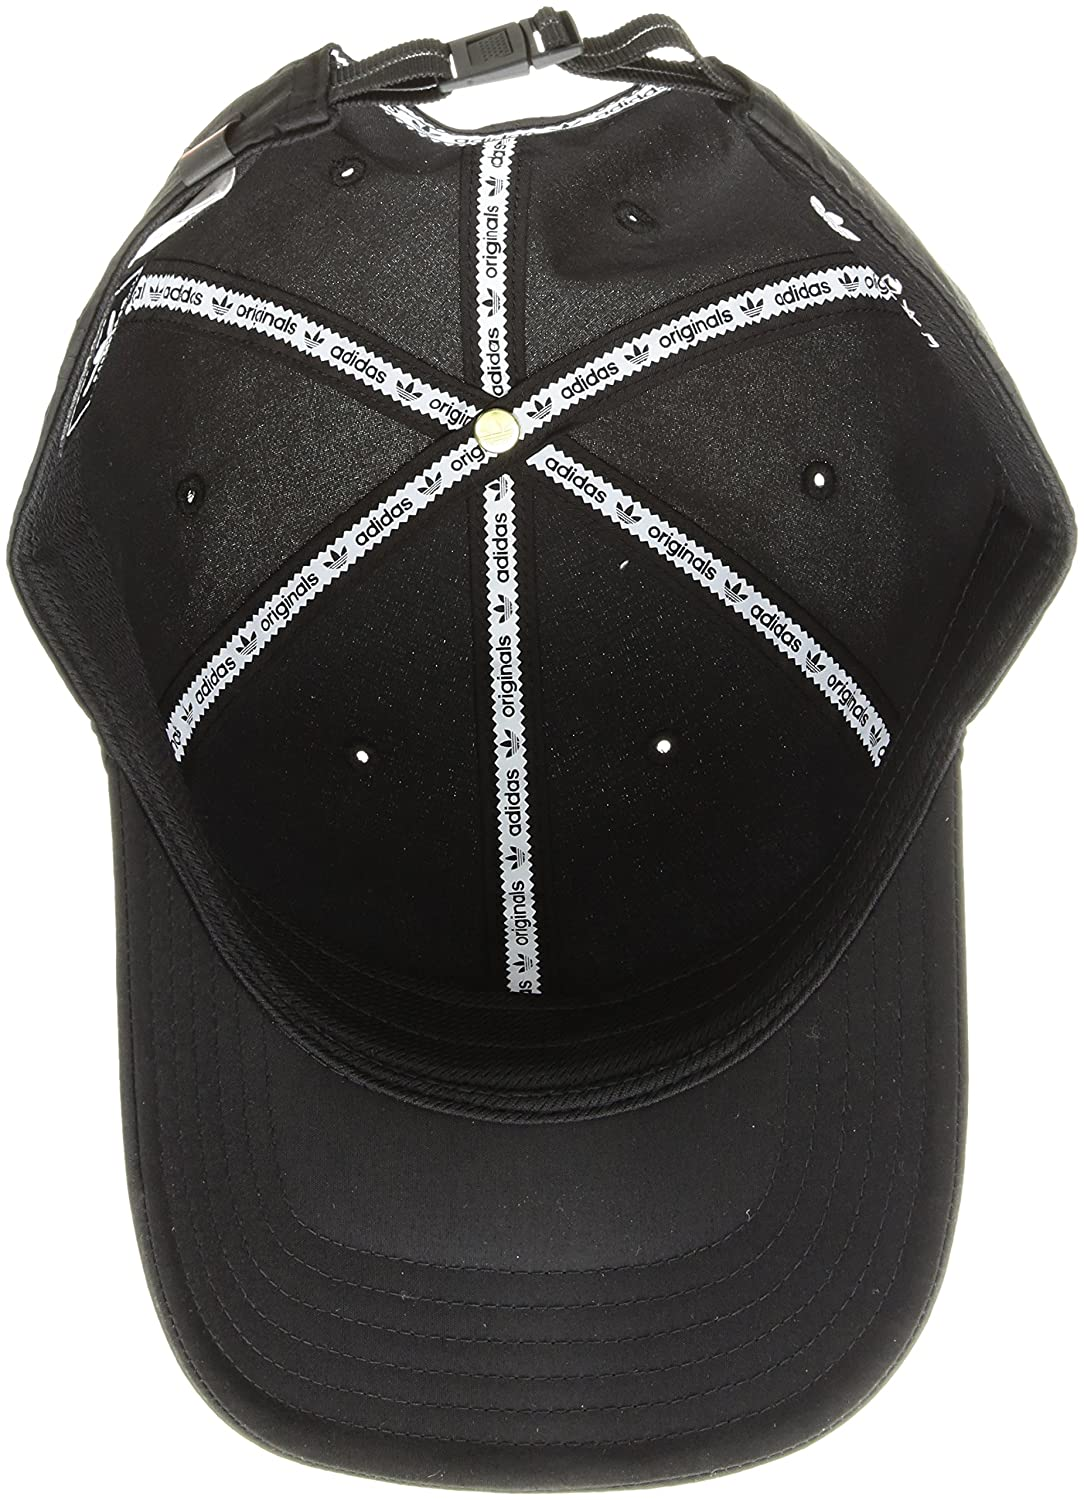 a60f05326b1 Amazon.com  adidas Men s Originals Modern Relaxed Adjustable Strapback Cap